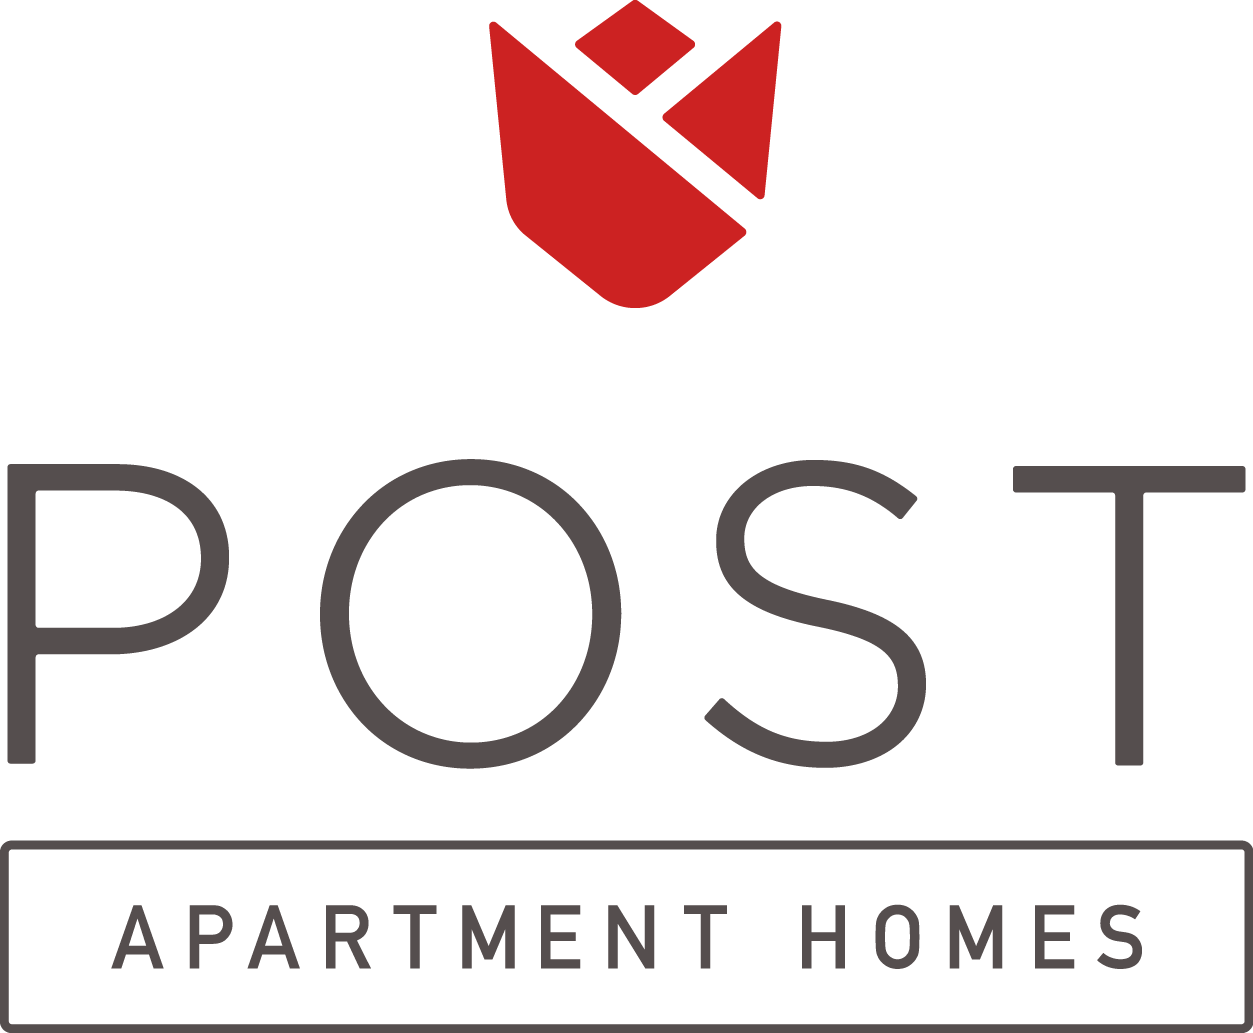 Post_Logo_ApartmentHomes_red (003)_31435316.png